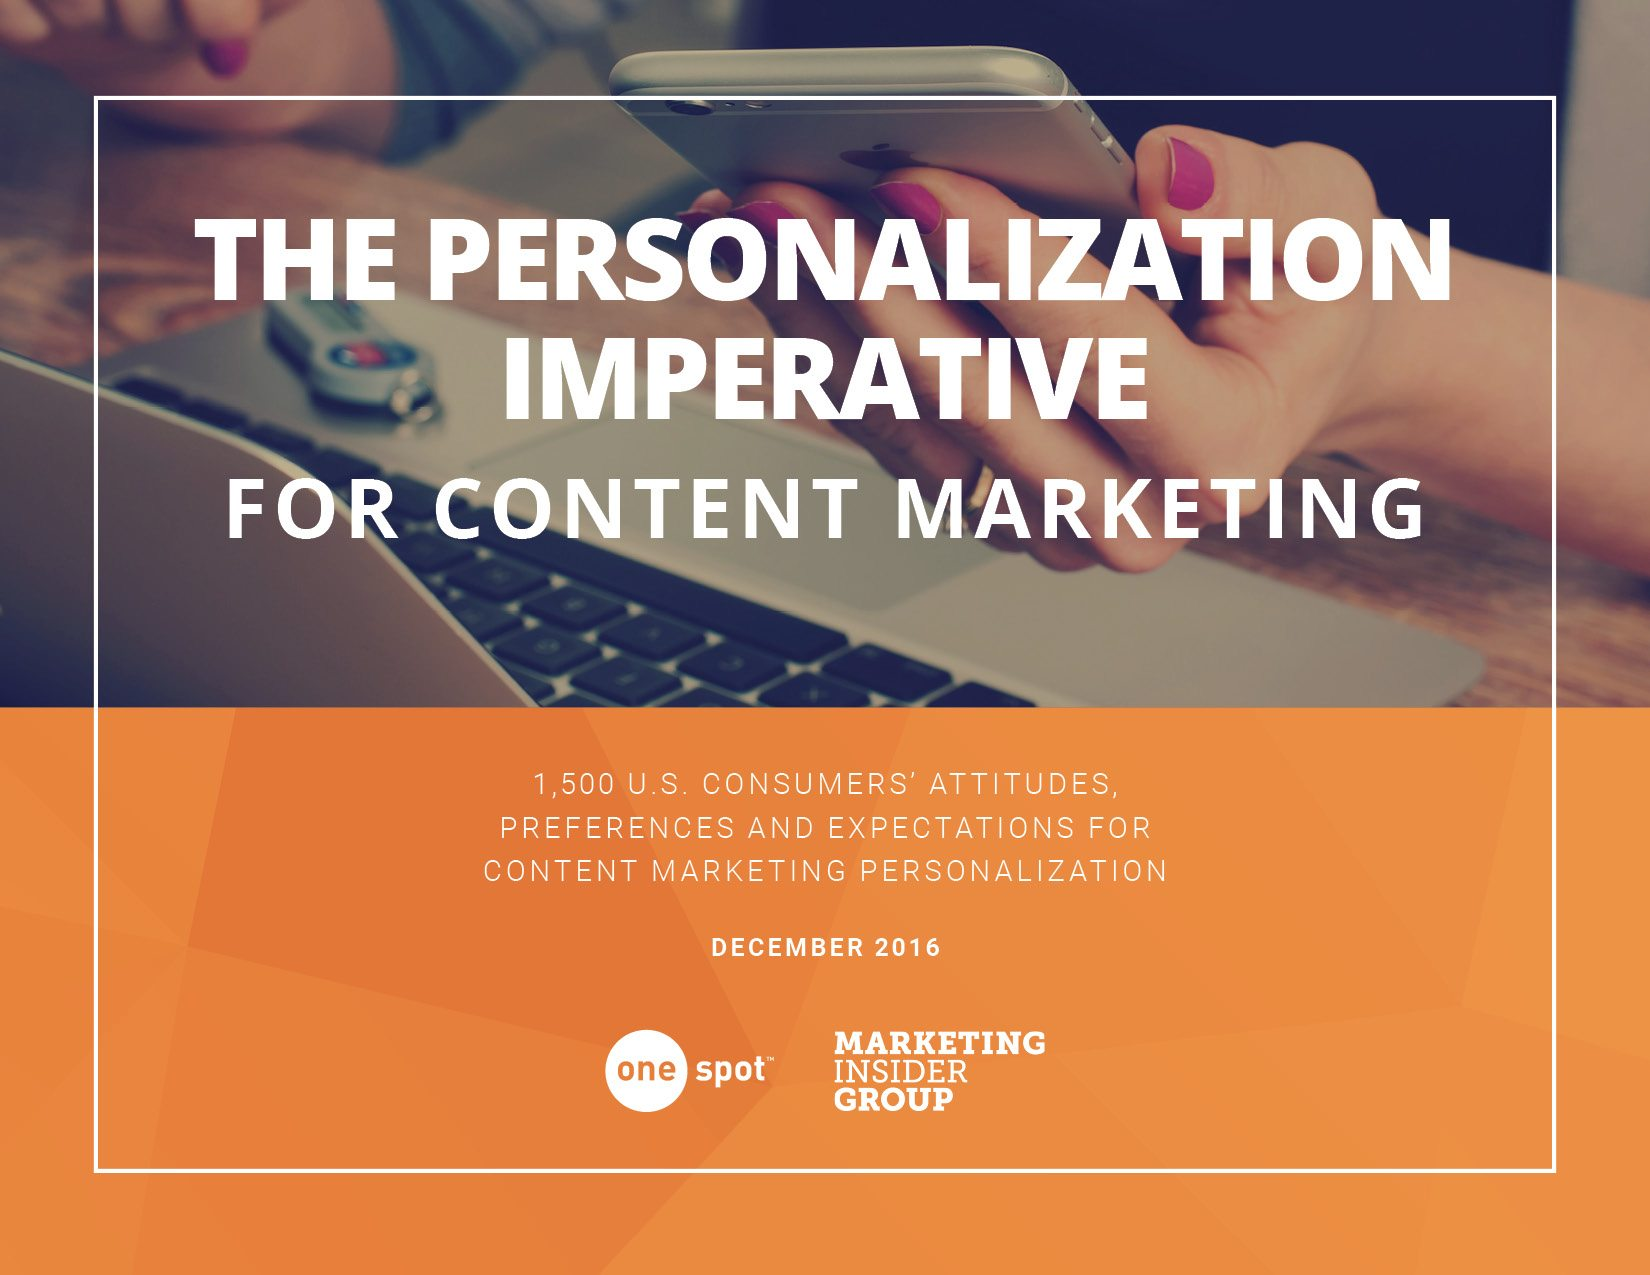 The Content Marketing Personalization Imperative